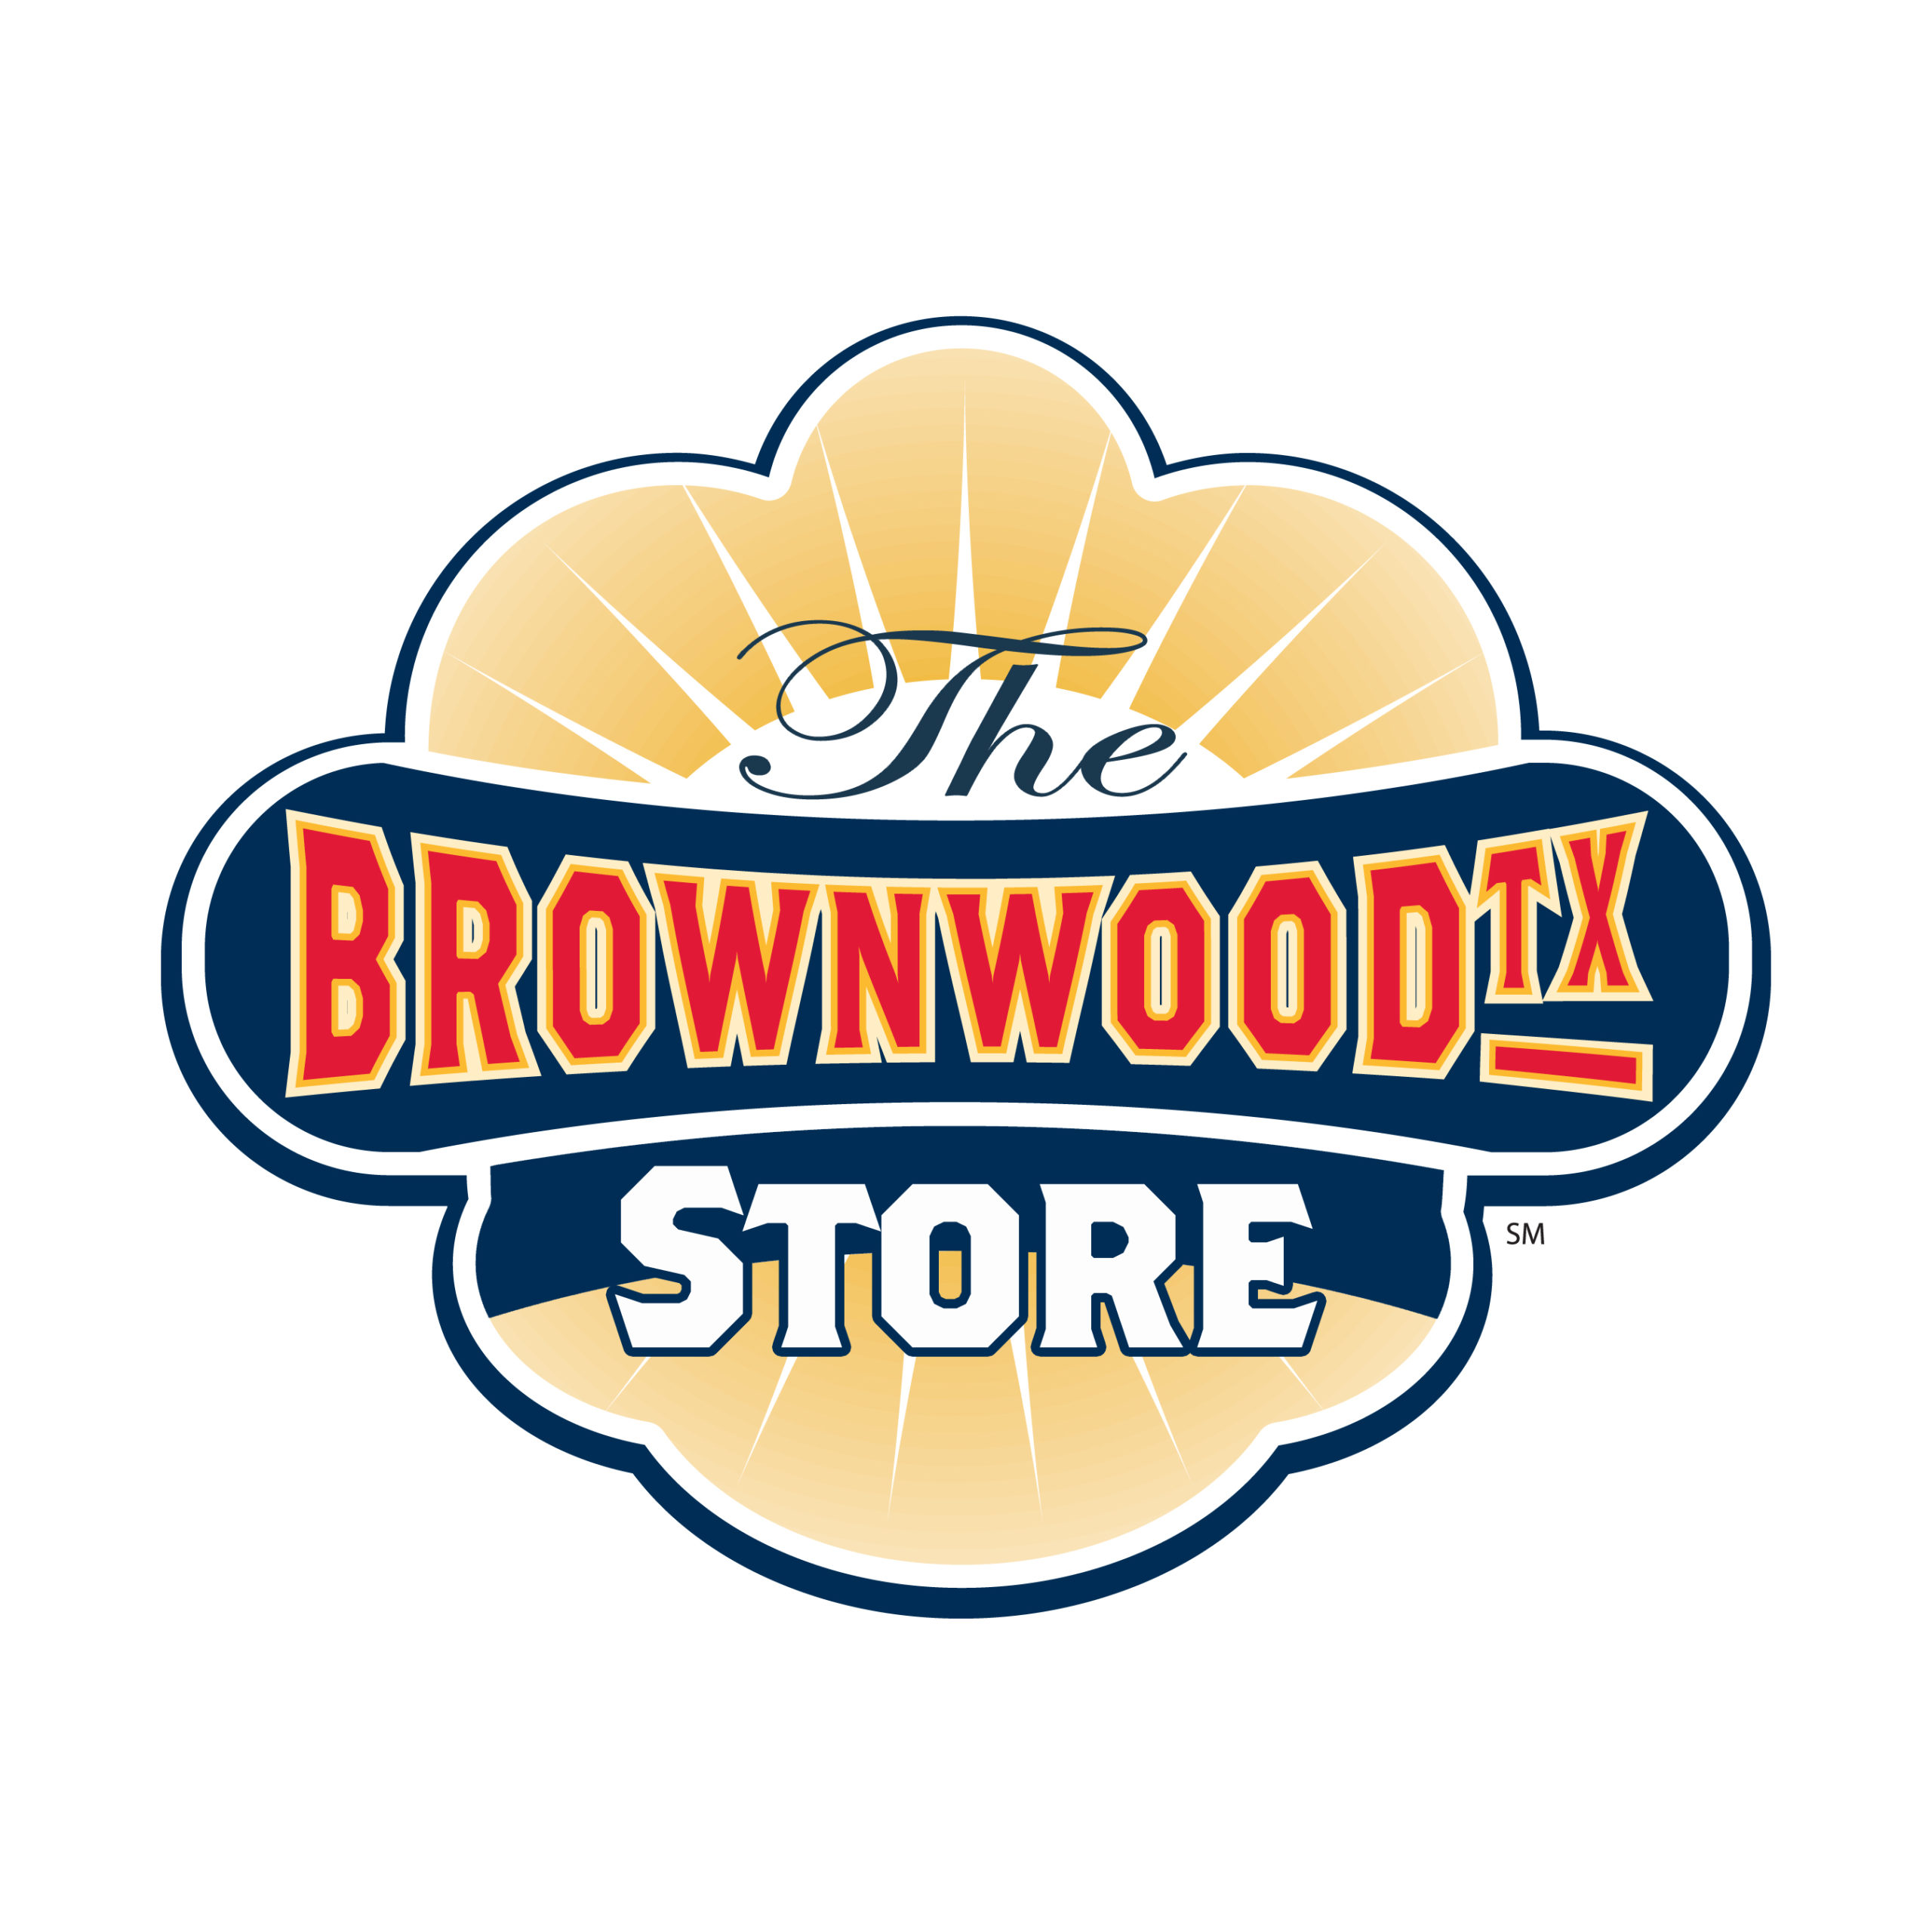 The Brownwood Store